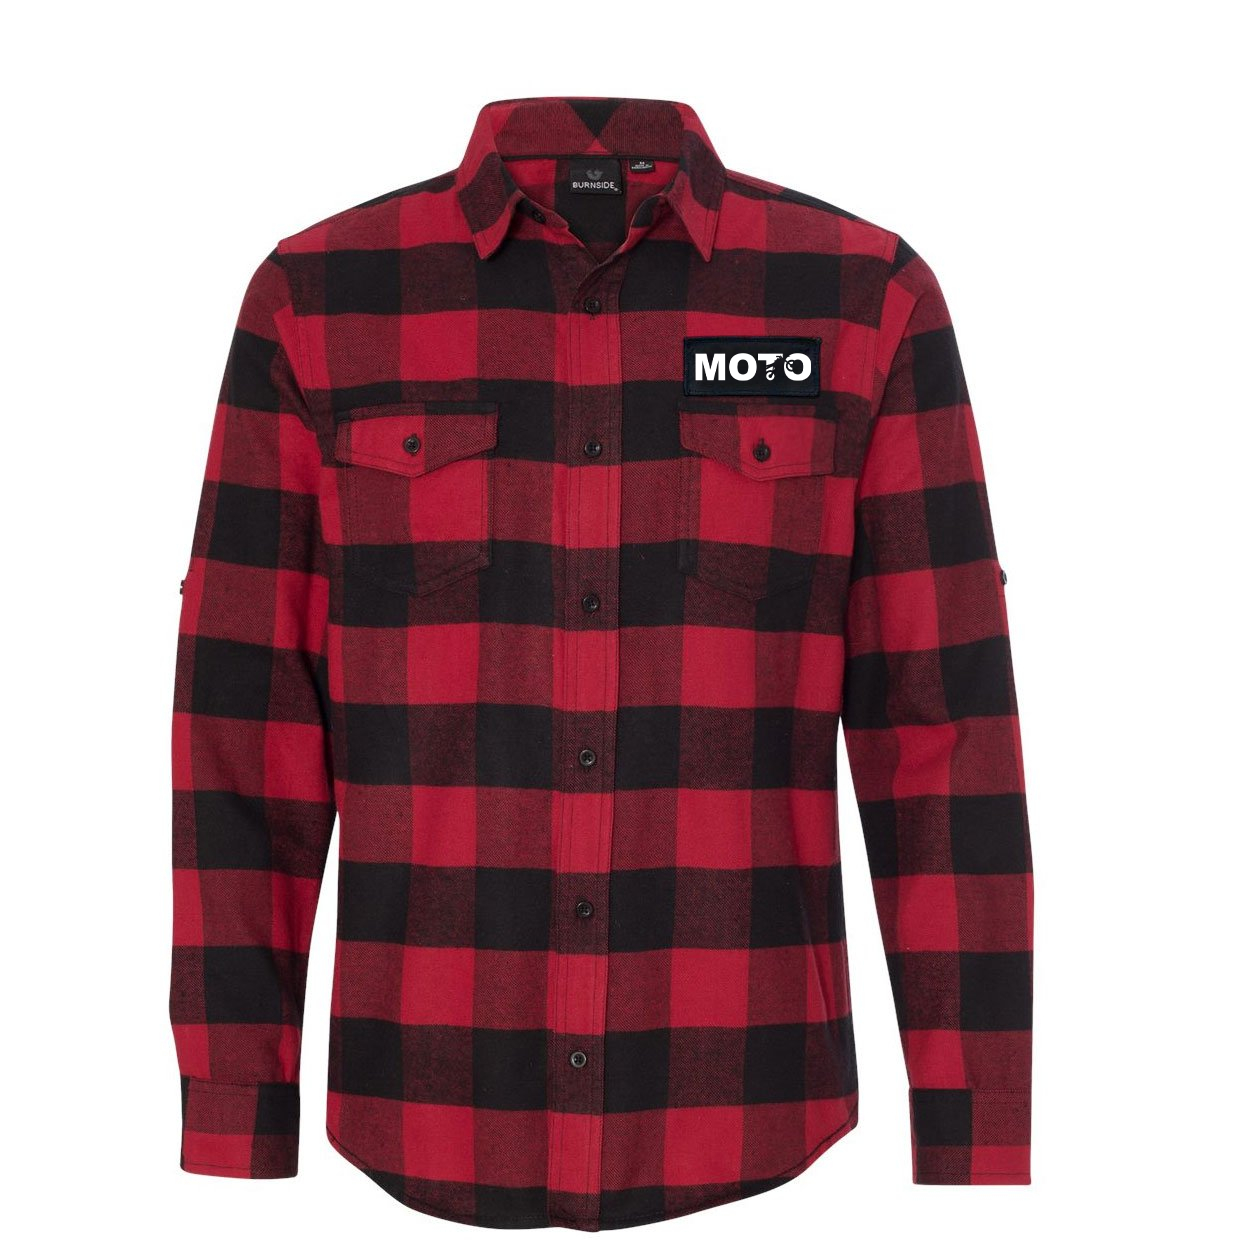 Moto Wheelie Logo Classic Unisex Long Sleeve Woven Patch Flannel Shirt Red/Black Buffalo (White Logo)